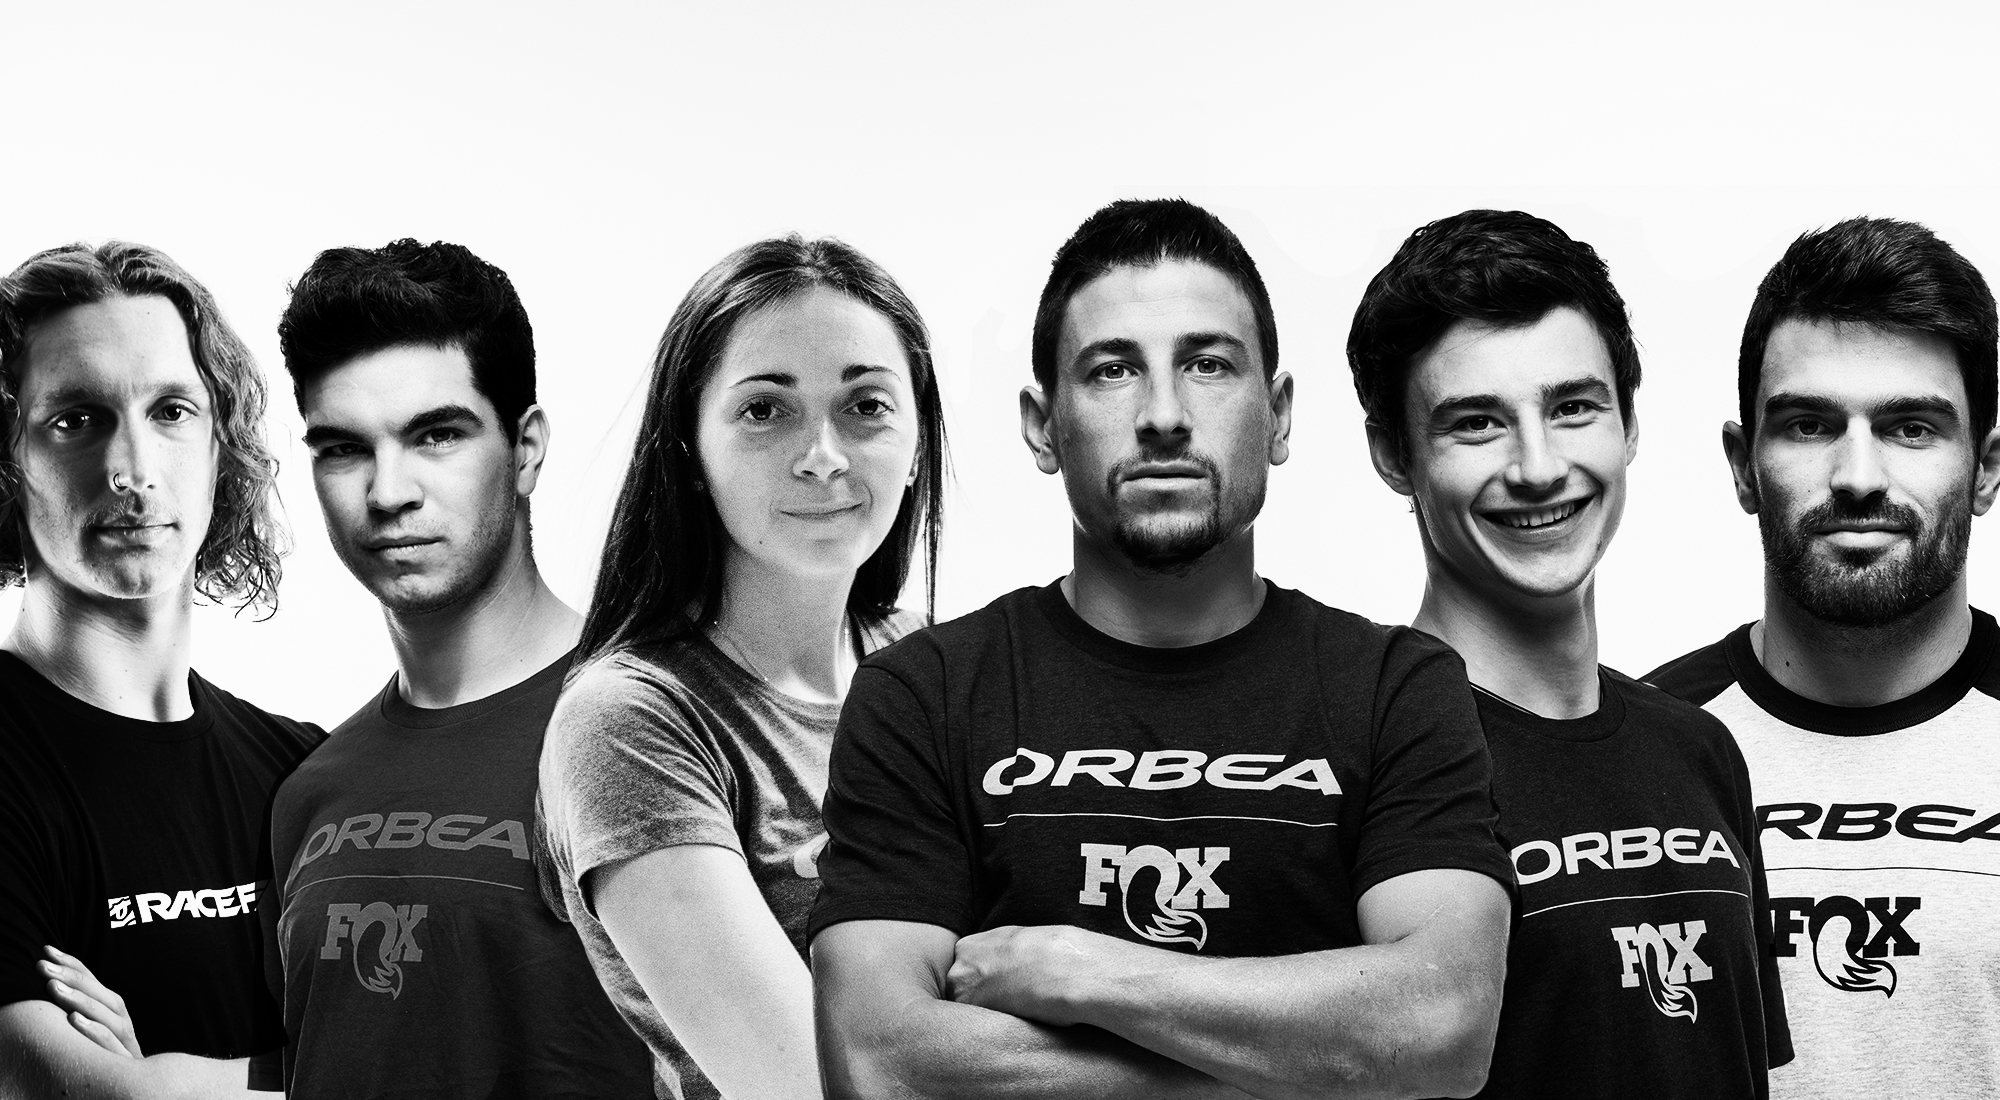 Orbea FOX Enduro Team: More enduro!